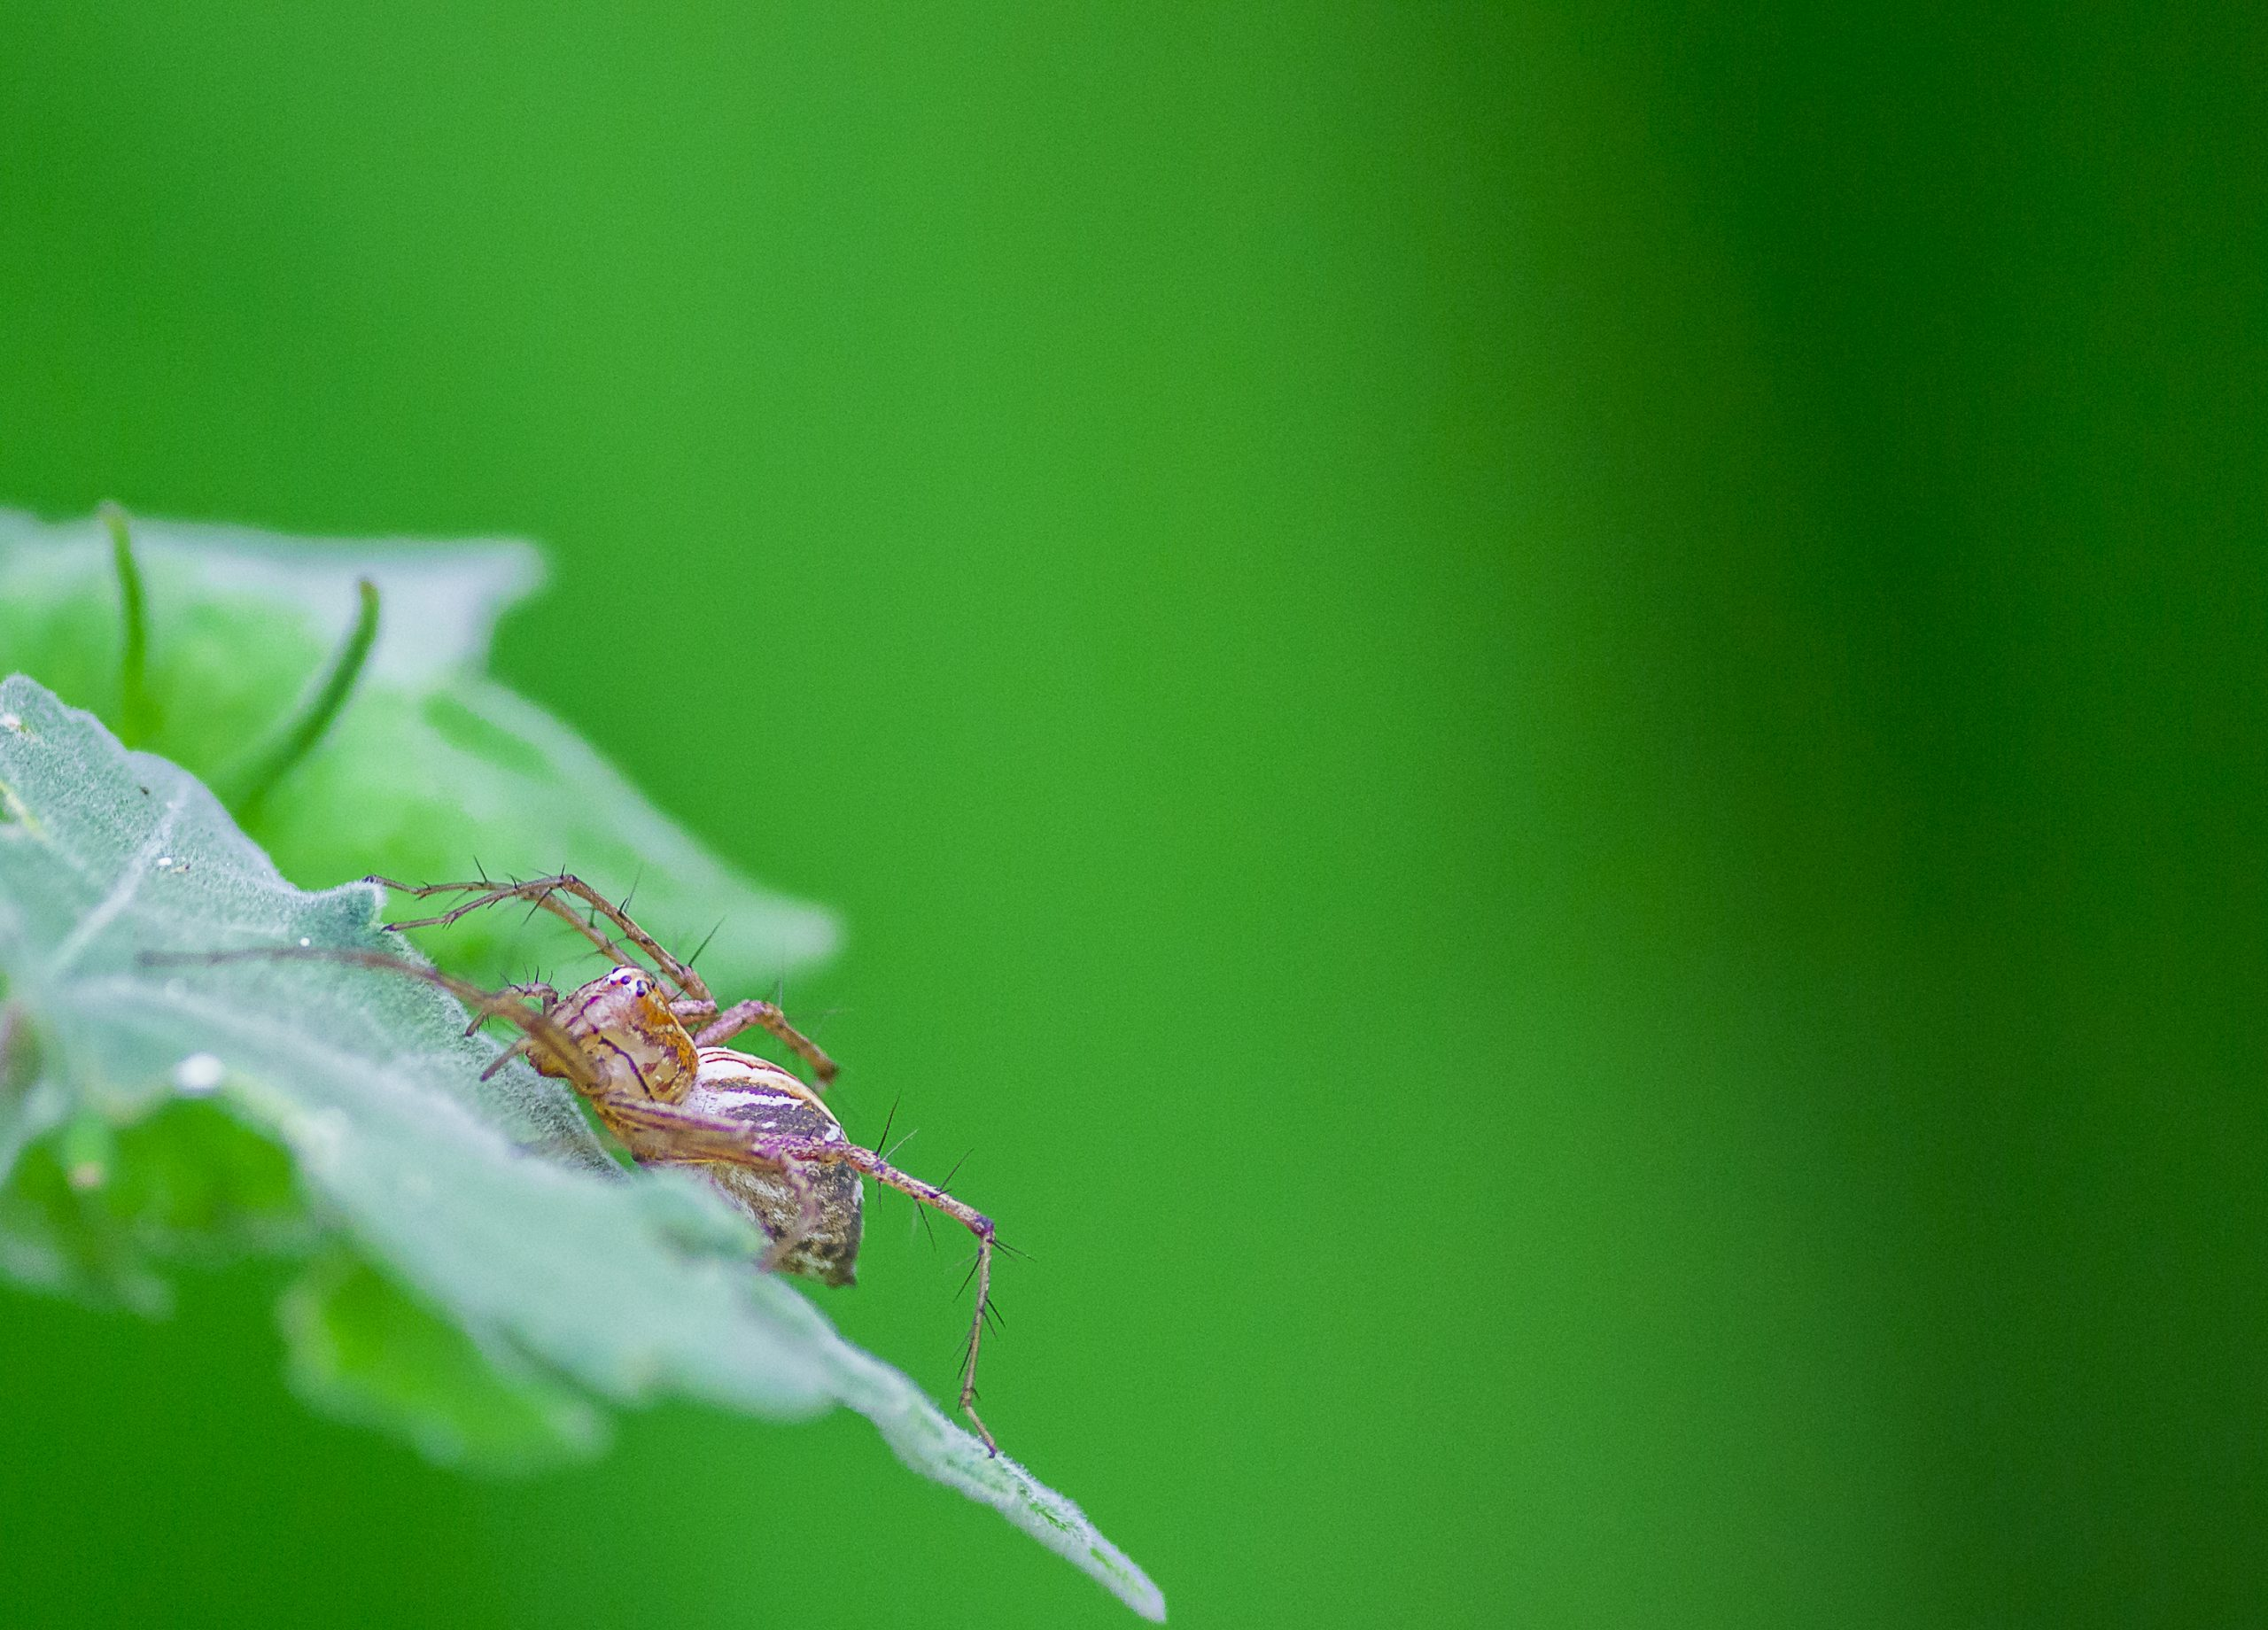 A spider on a leafq